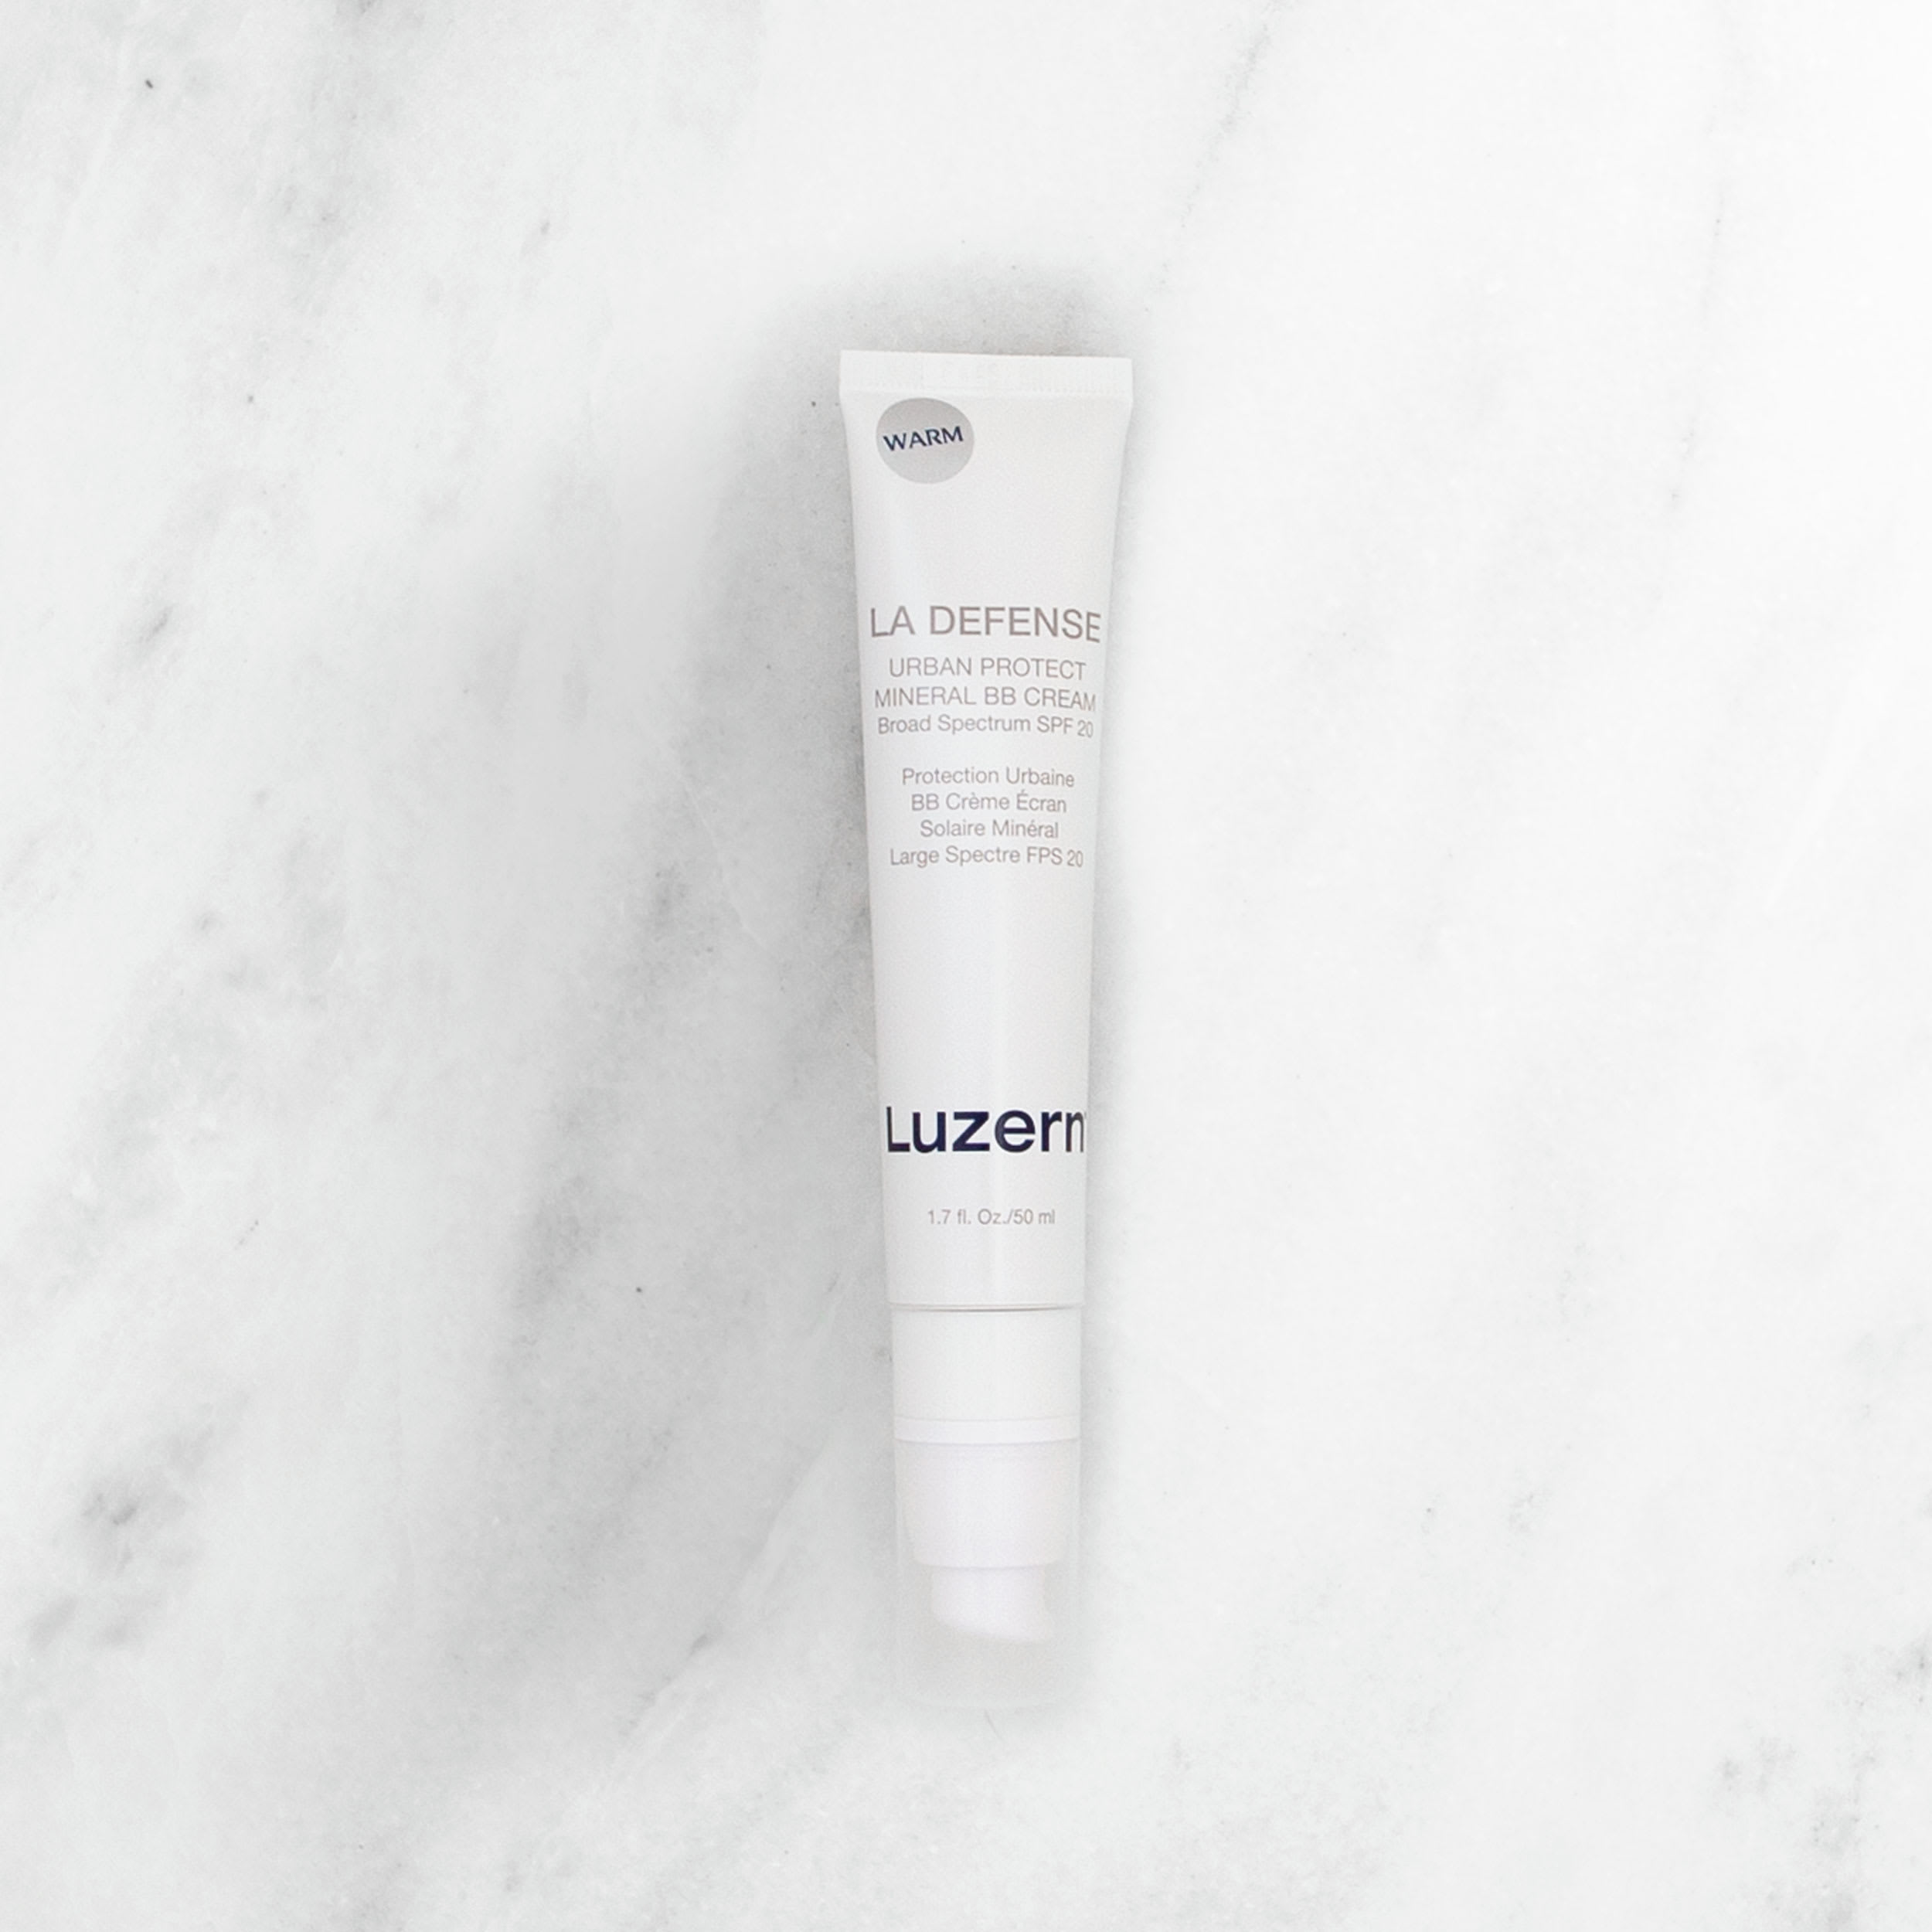 Luzern's LaDefense Urban Protect BB Cream Warm